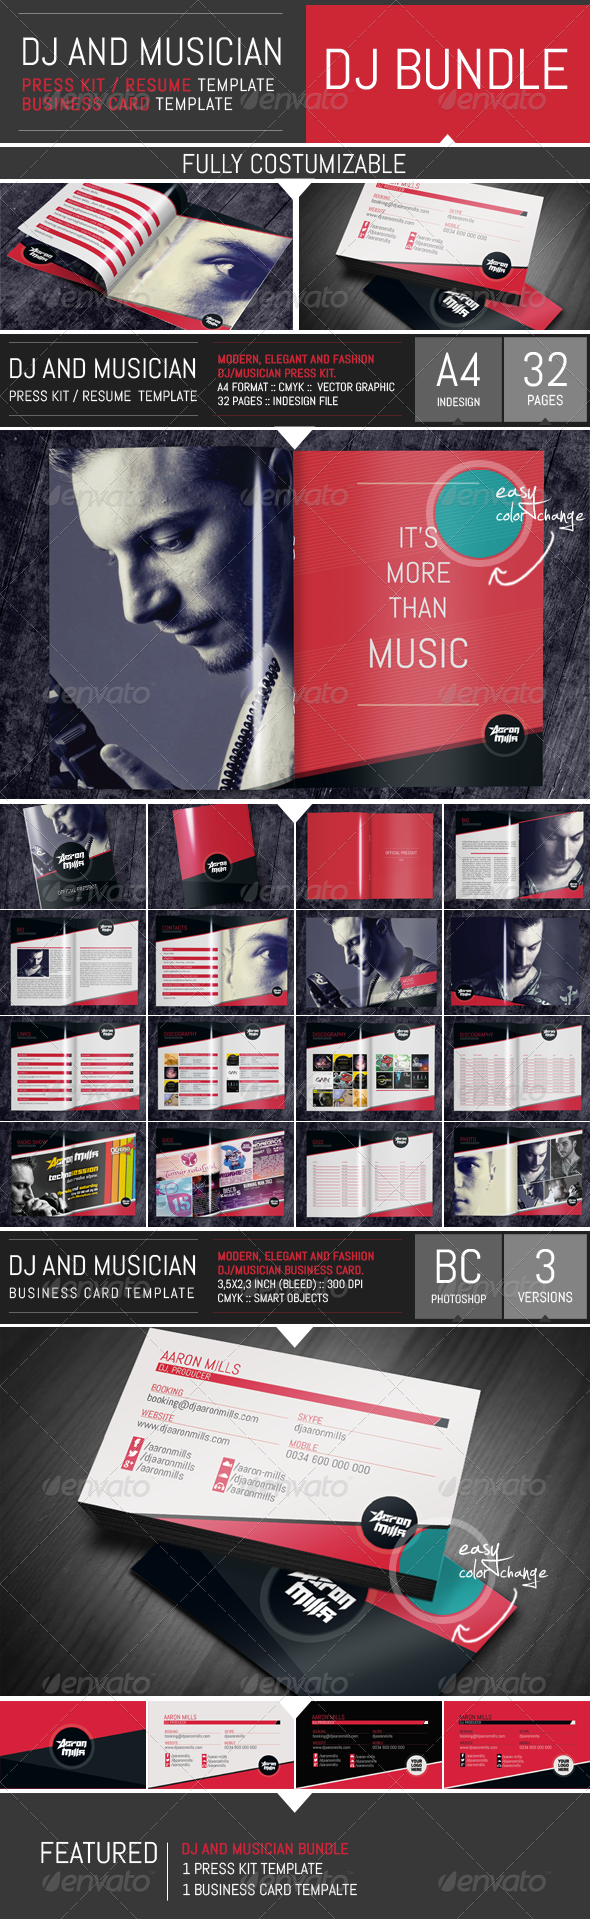 Indesign press kit templates stock for Dj press kit template free